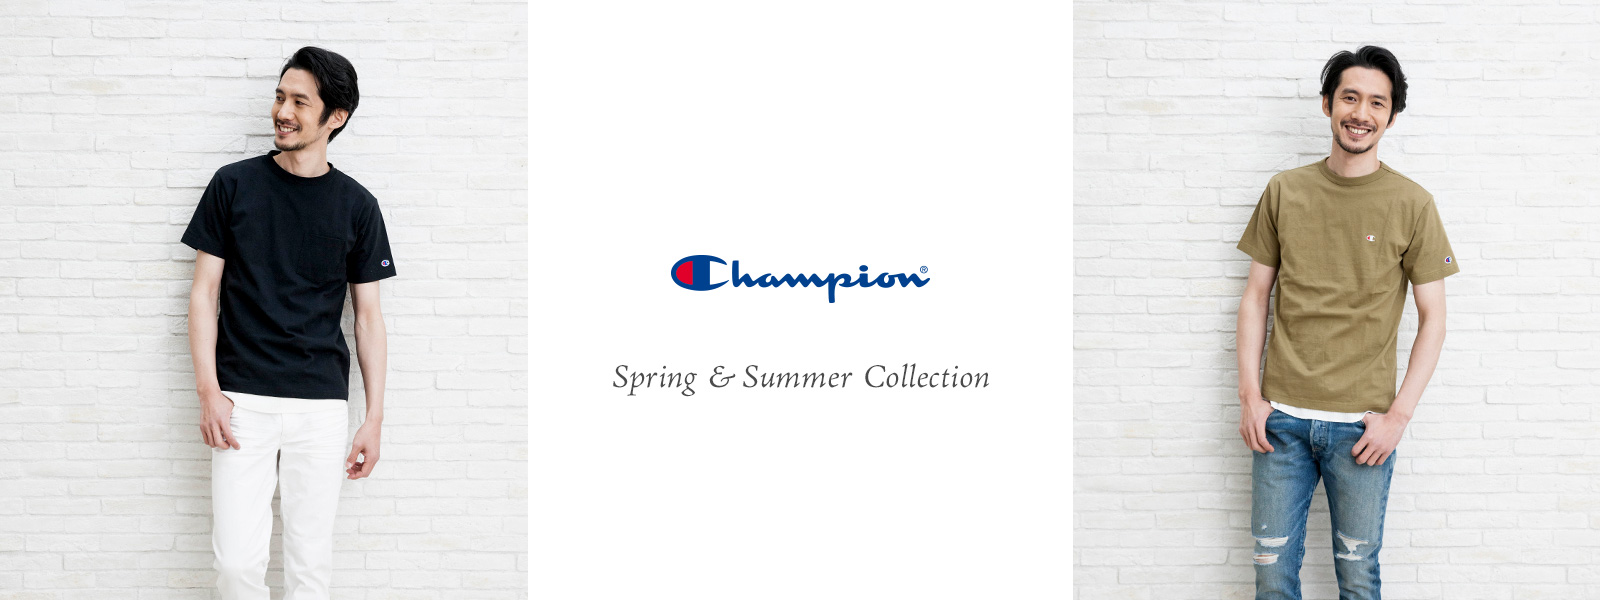 CHAMPION Spring & Summer Collection